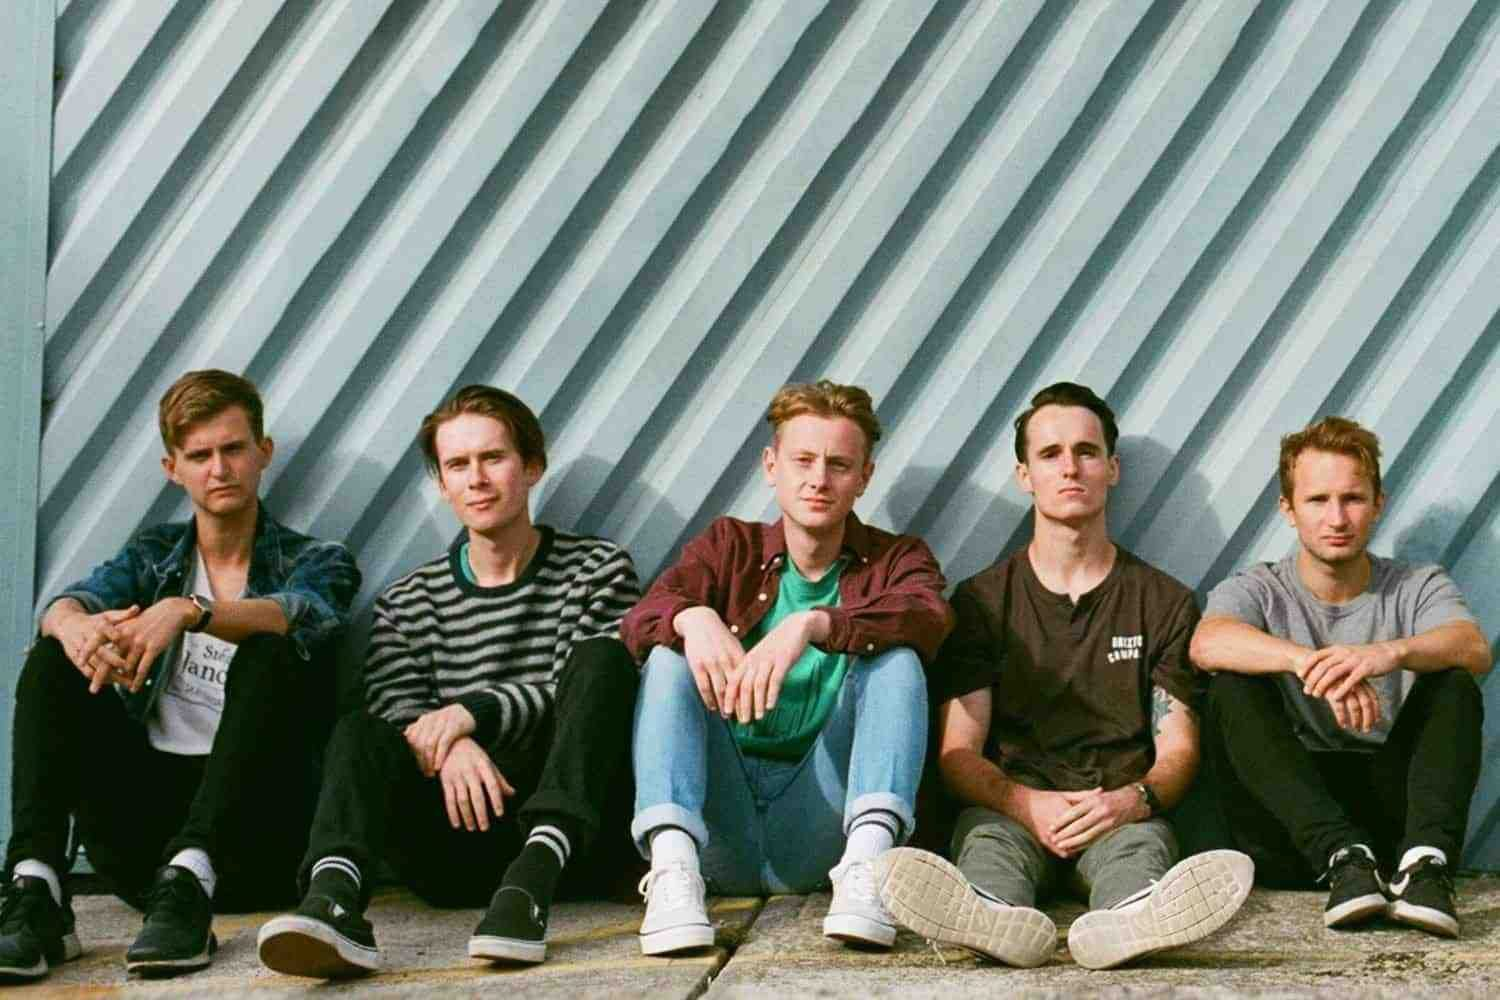 ROAM are back with their second album, 'Great Heights & Nosedives'